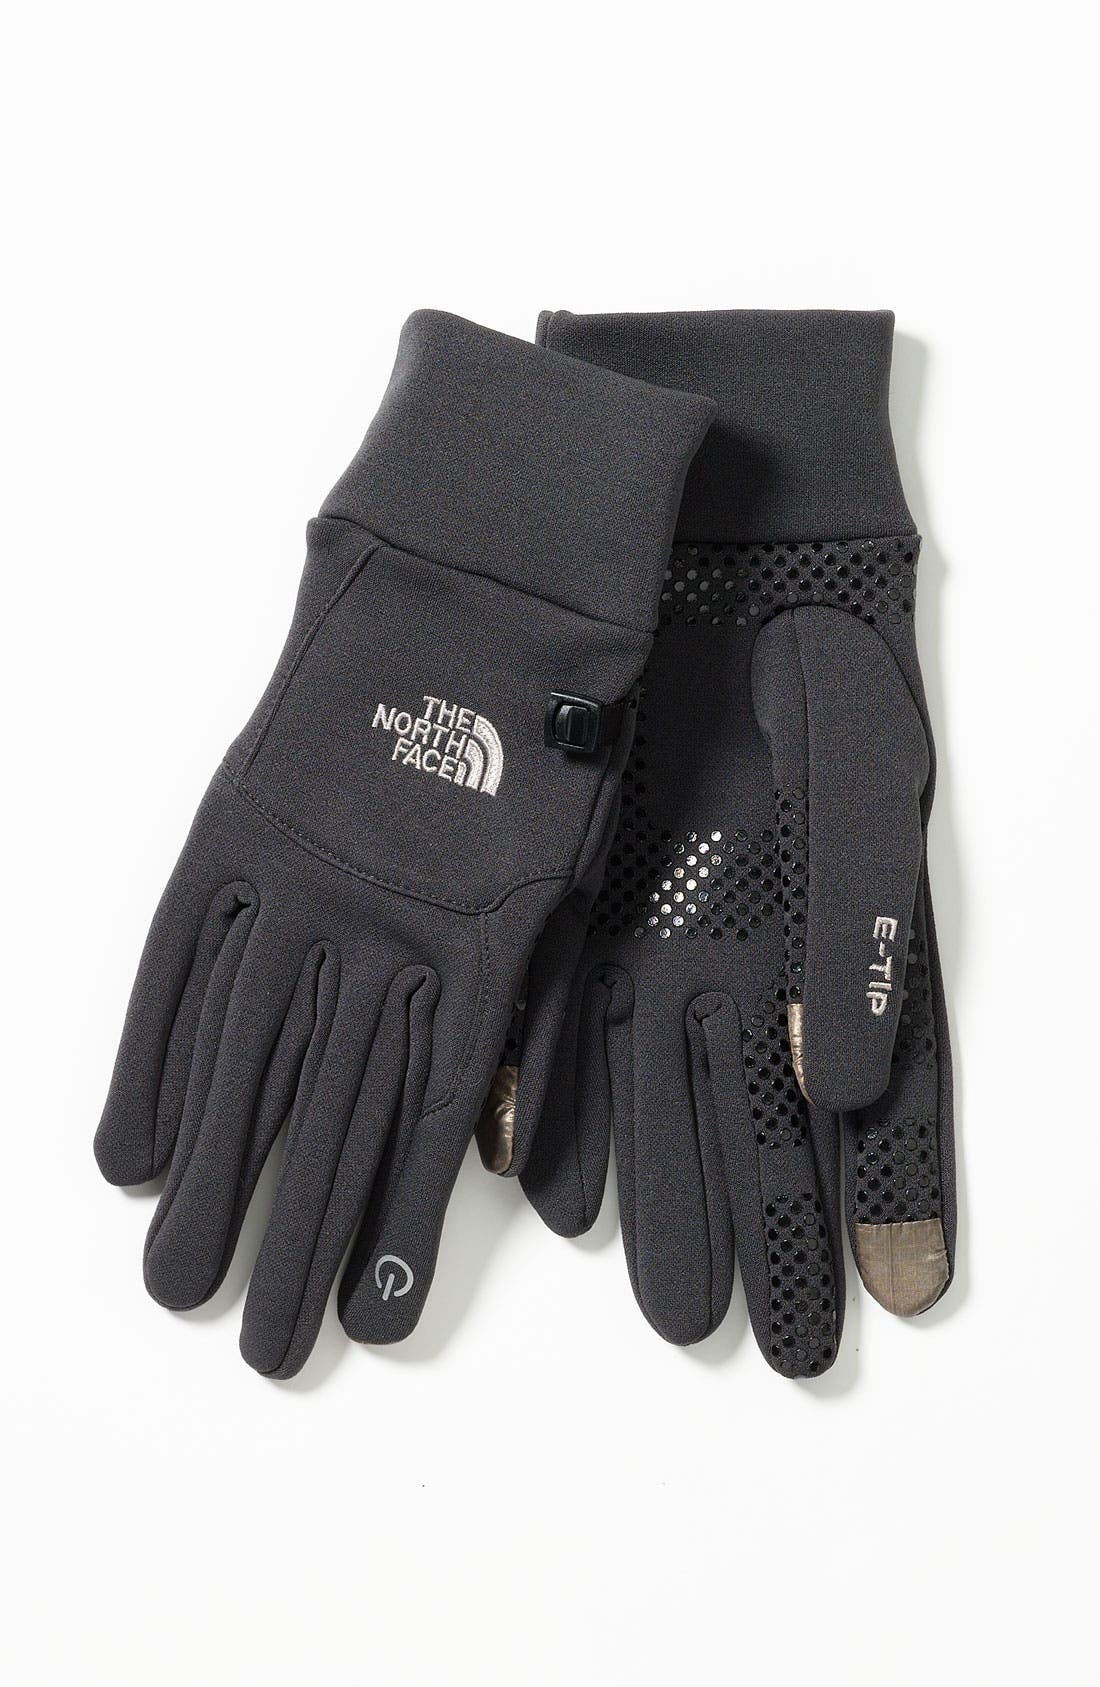 THE NORTH FACE,                             E-Tip Gloves,                             Alternate thumbnail 2, color,                             001